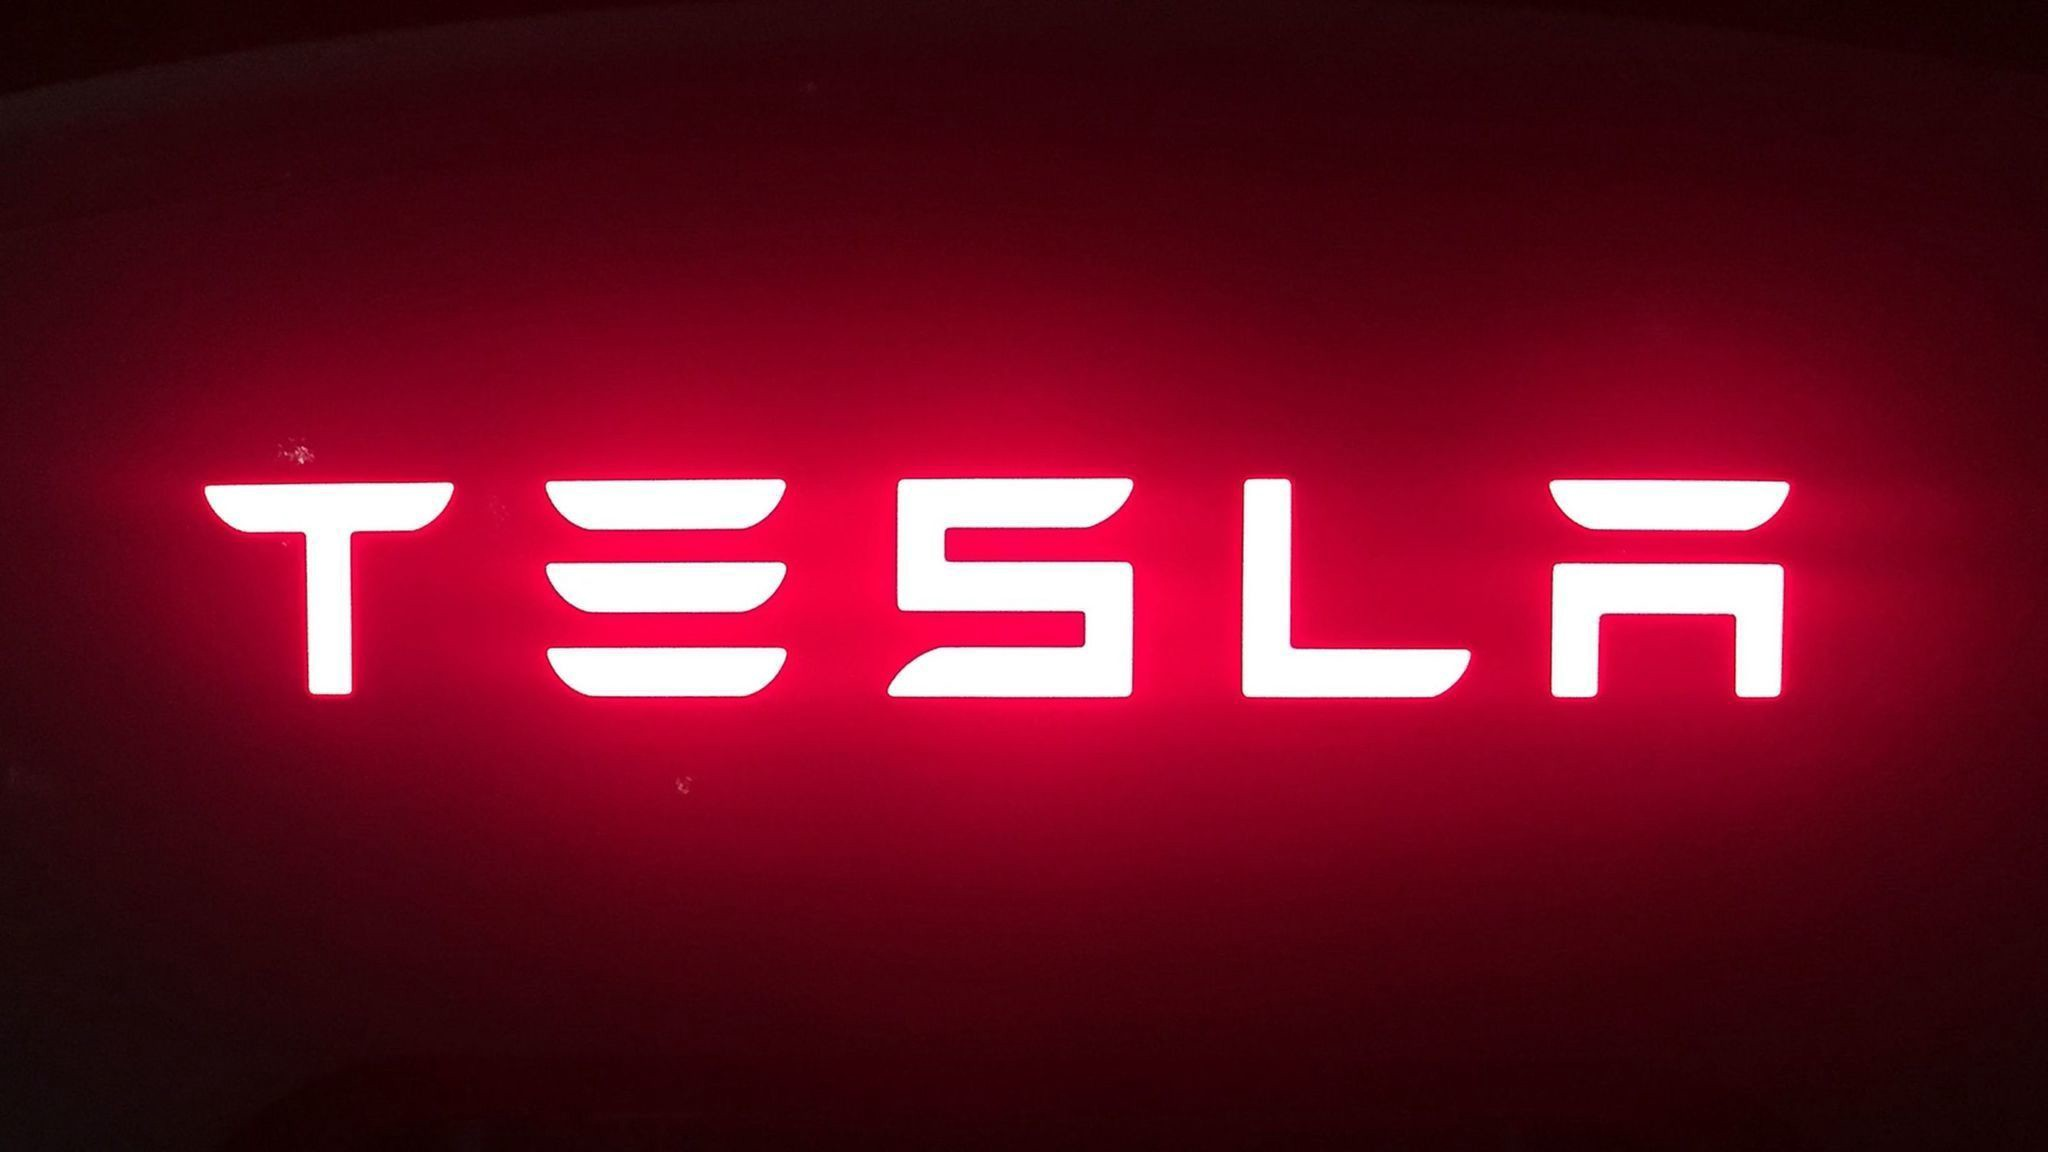 How Tesla Will Become The World S Next Most Valuable Company By Soby Medium